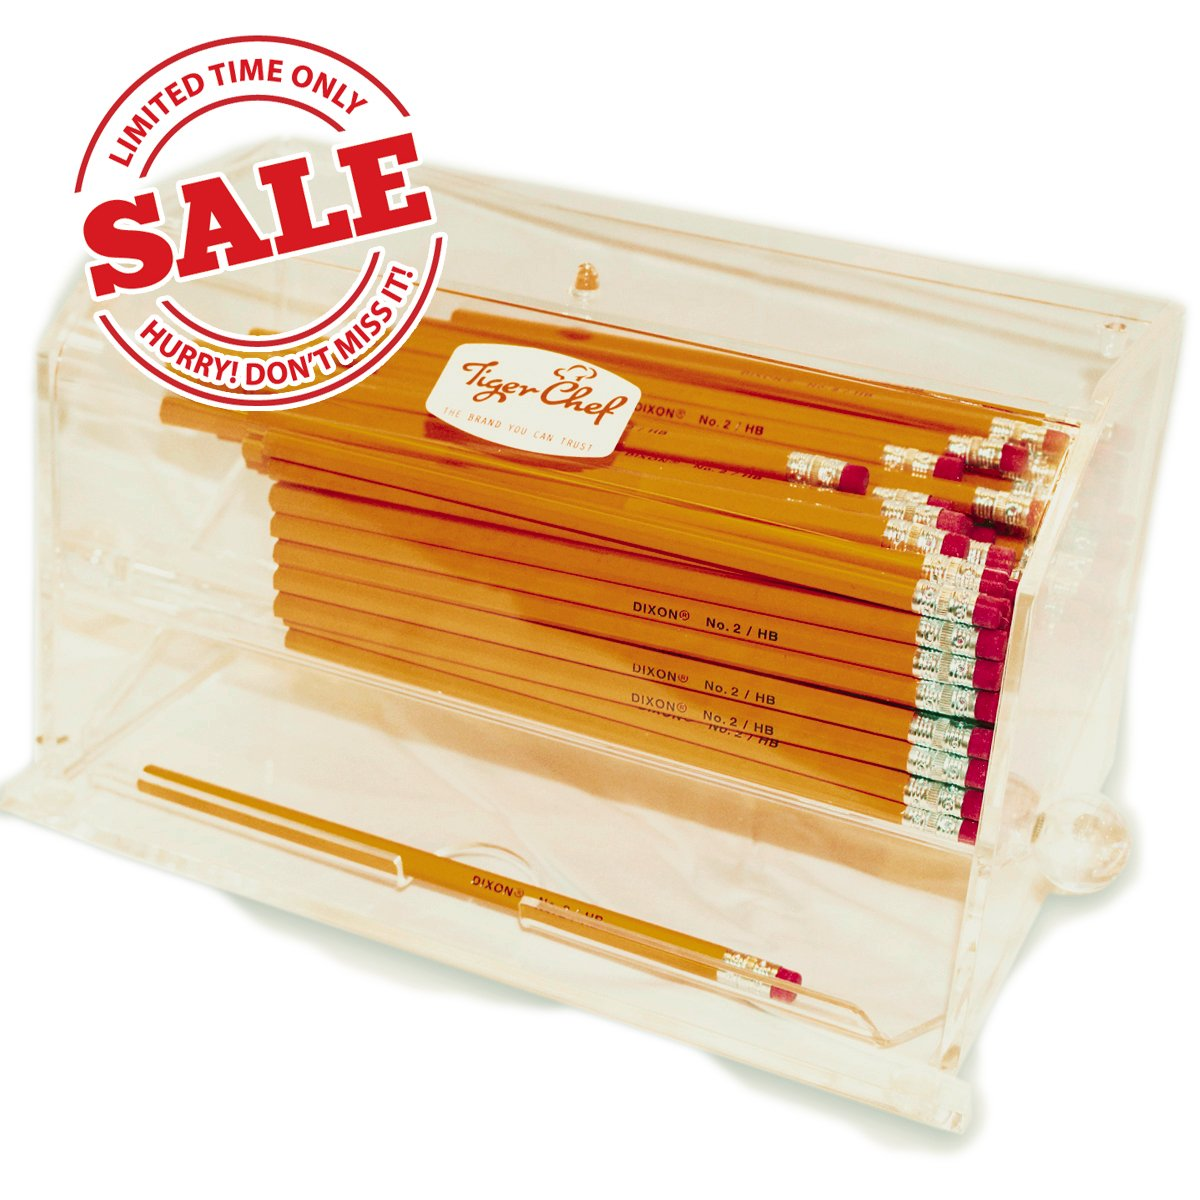 Tiger Chef Acrylic Pen and Pencil Dispenser Teachers Gifts Includes 1 D.